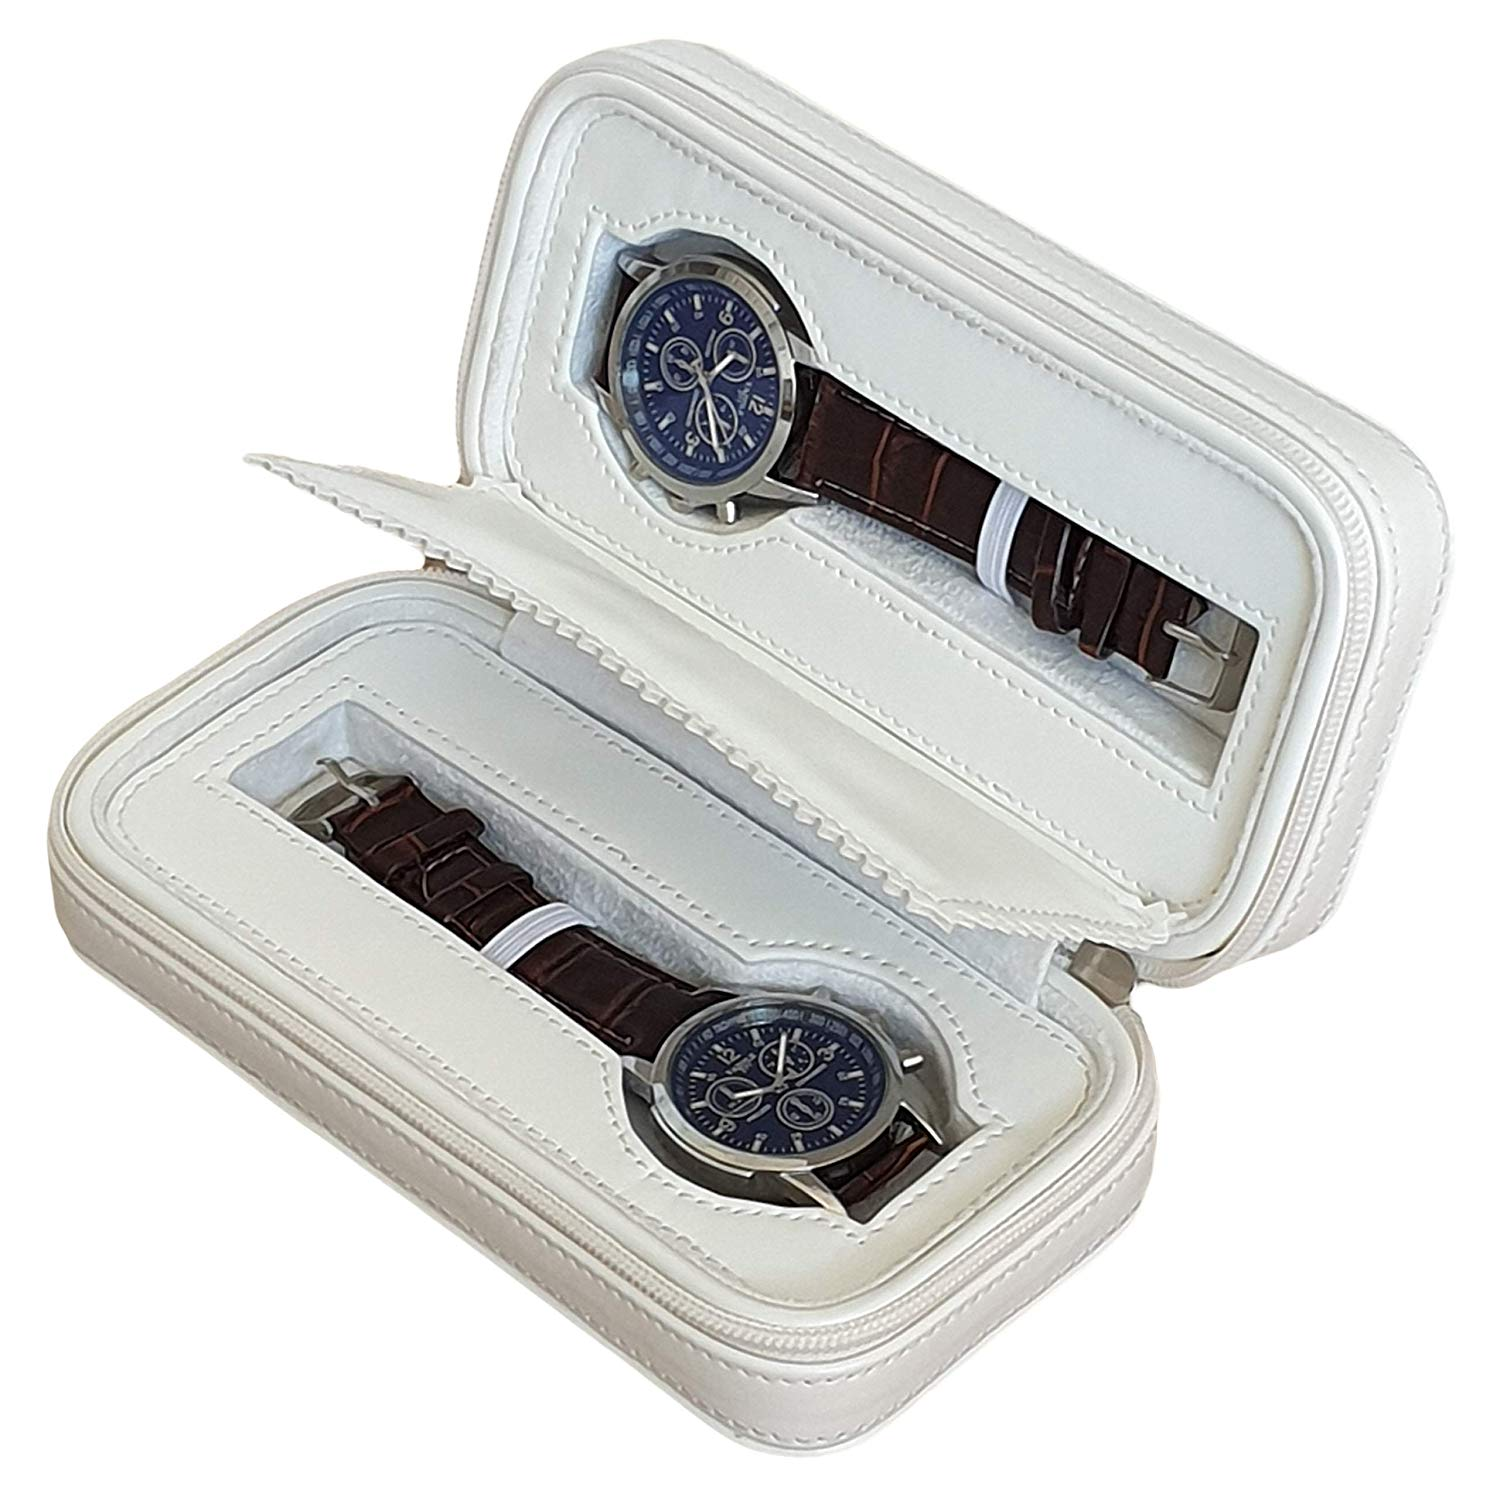 createBB Watch Box Travel Case for Men and Women Faux Leather with 2 Slots Storage.